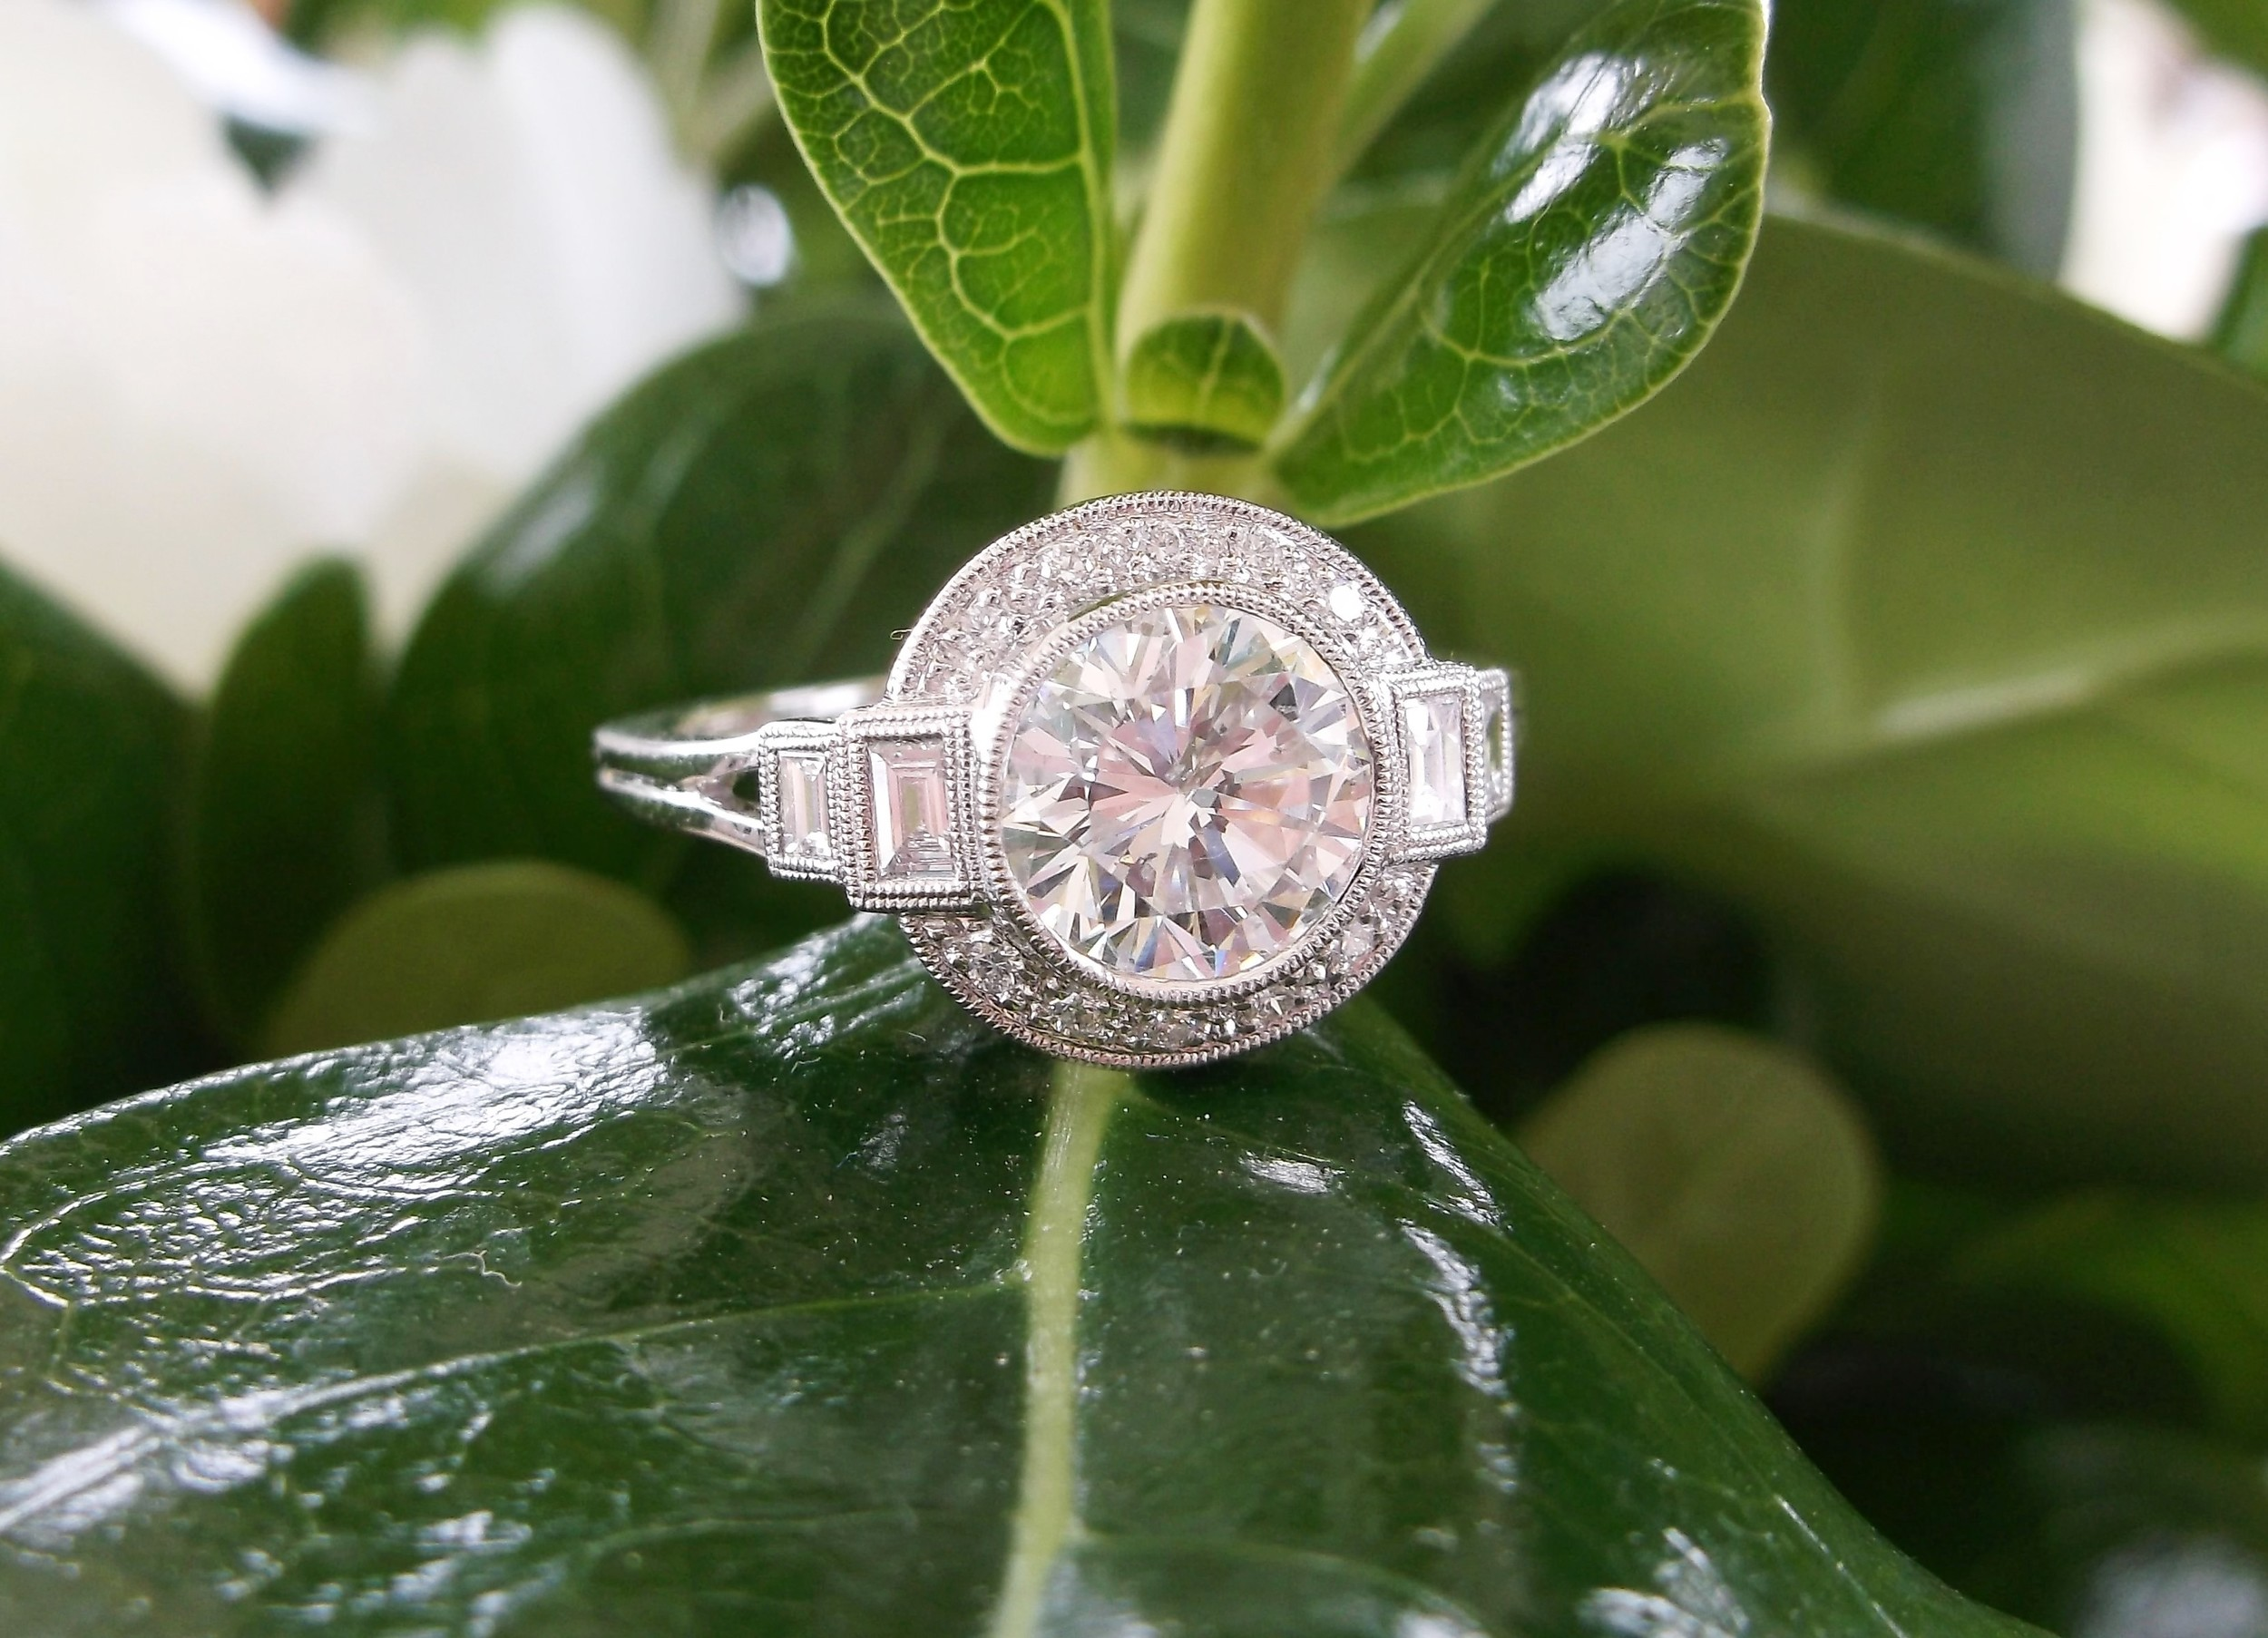 A gorgeous 1.29 carat diamond set in a beautifully crafted diamond and platinum mounting.